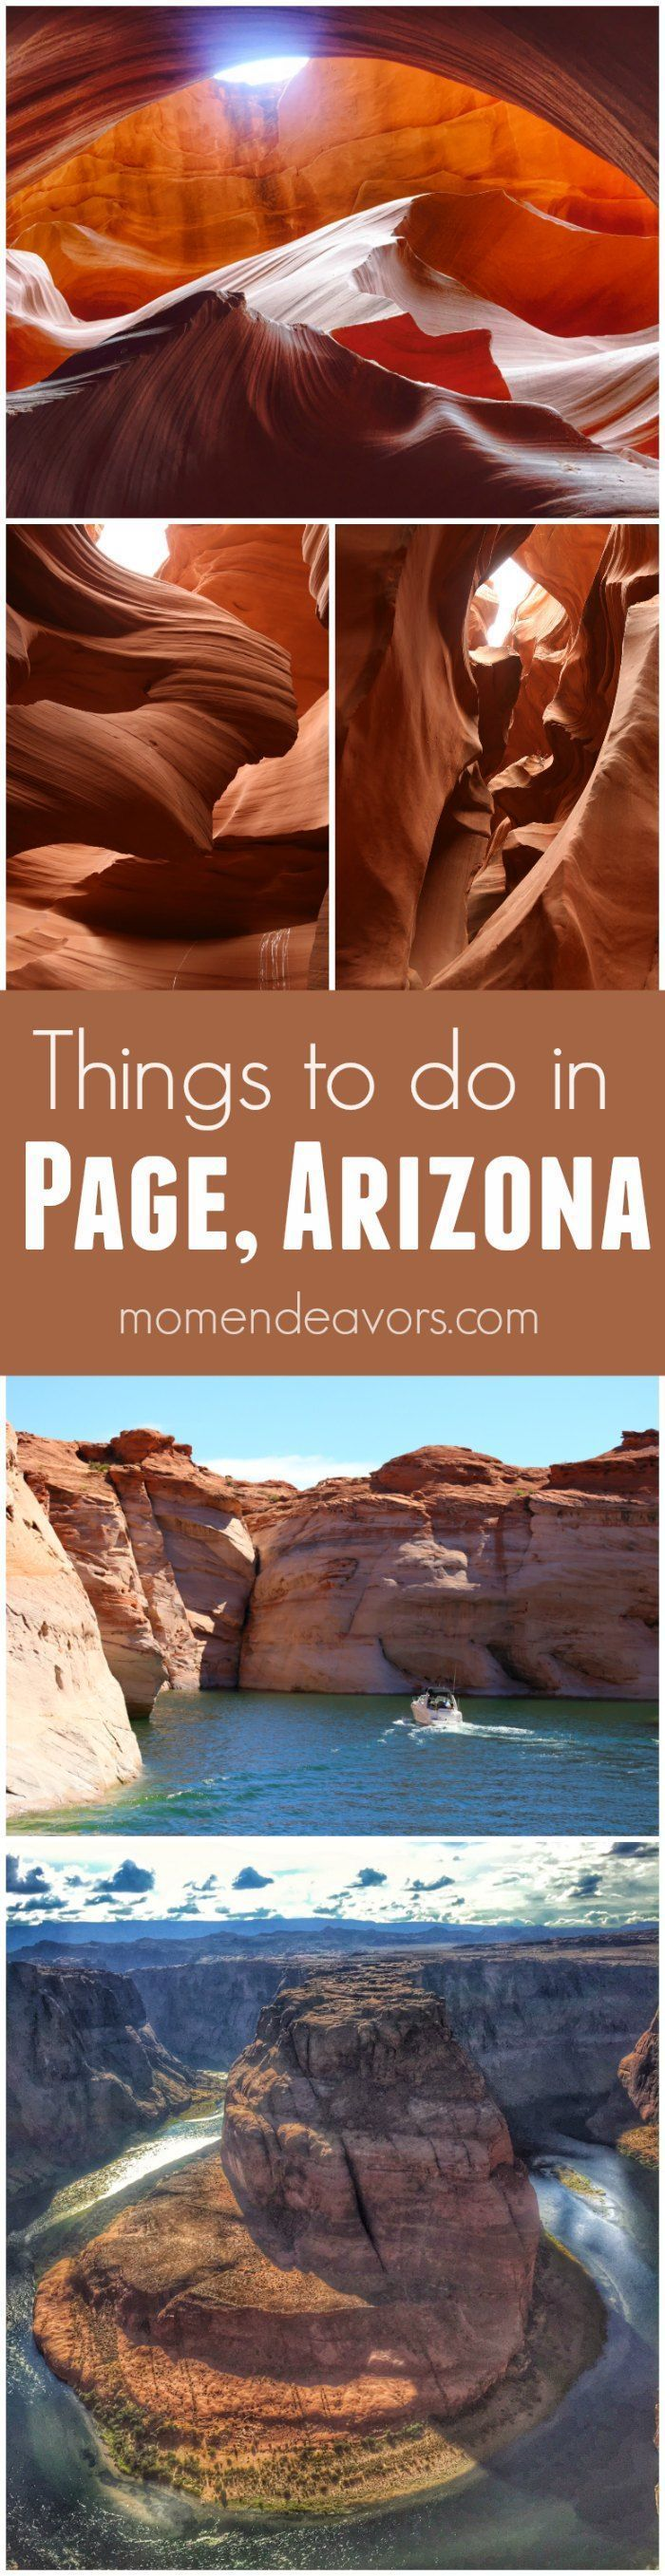 Thing to do in Page, Arizona - travel tips if you're visiting the National Parks in the desert southwest or doing an Arizona road trip!